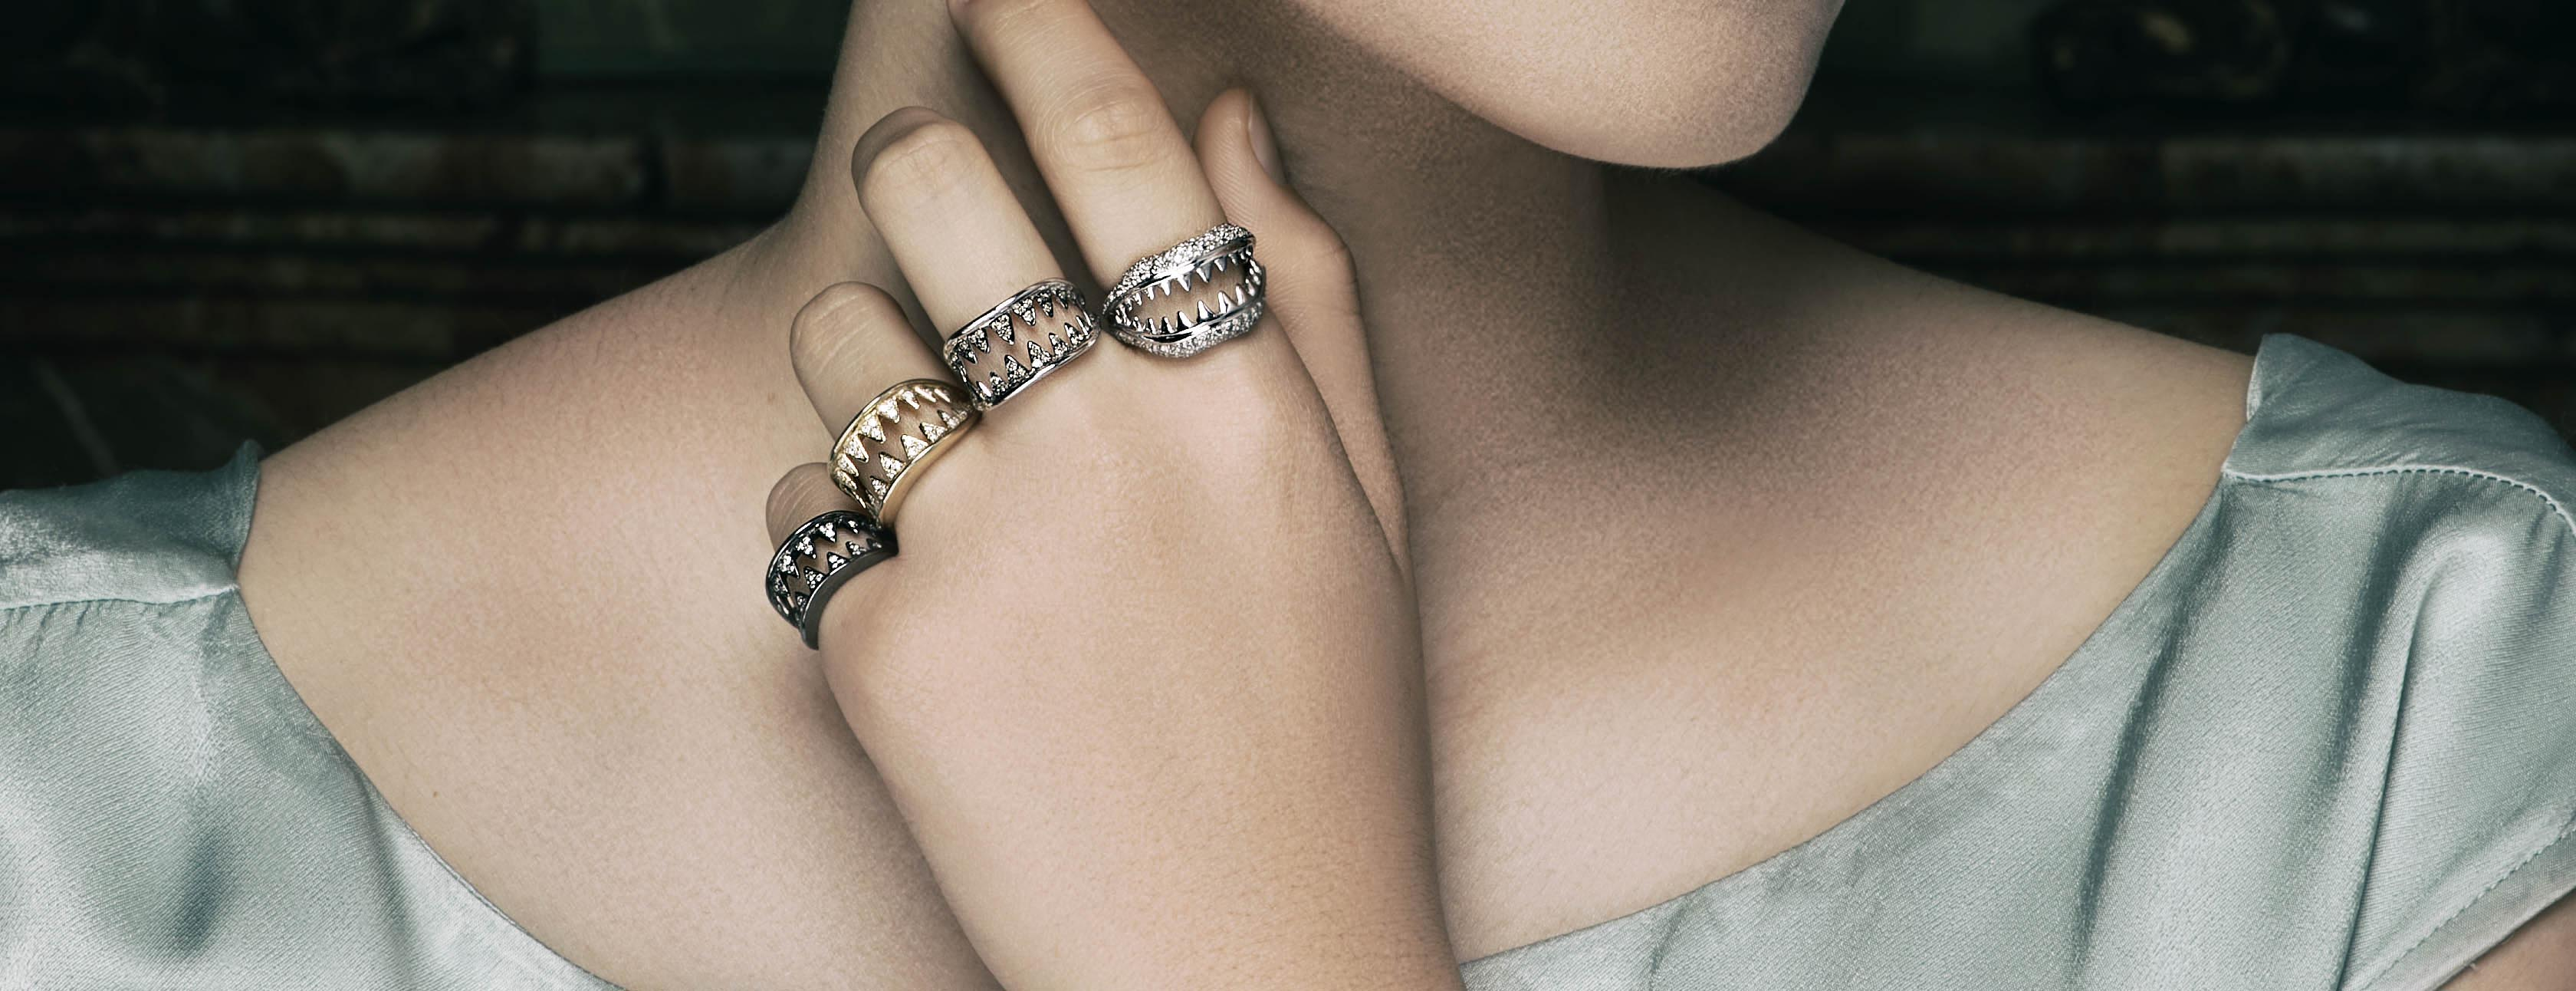 Rings from The Dangerous Kiss collection by Vanessa Pederzani